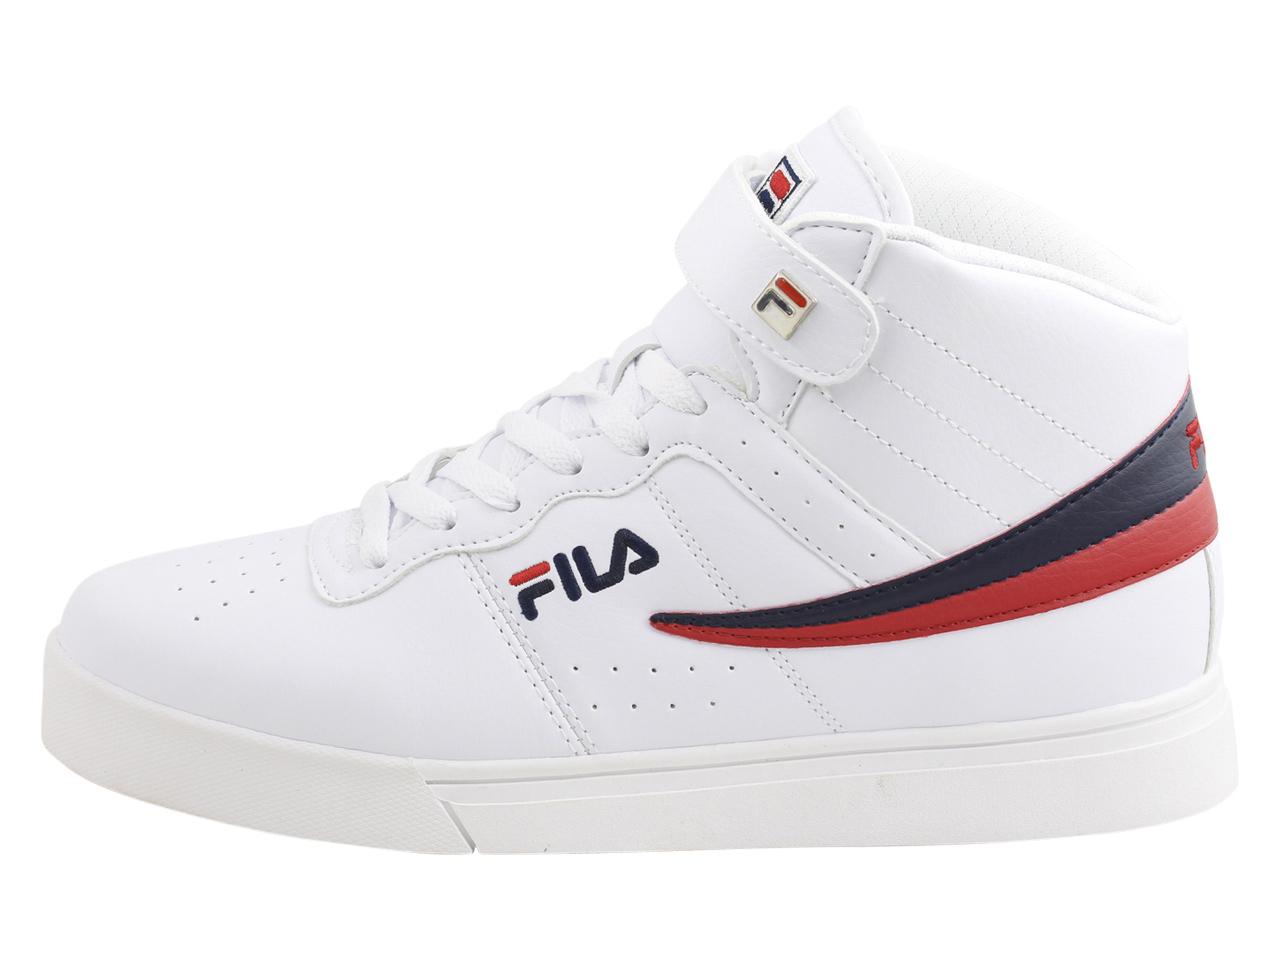 Fila-Men-039-s-Vulc-13-Mid-Plus-Sneakers-Shoes thumbnail 45